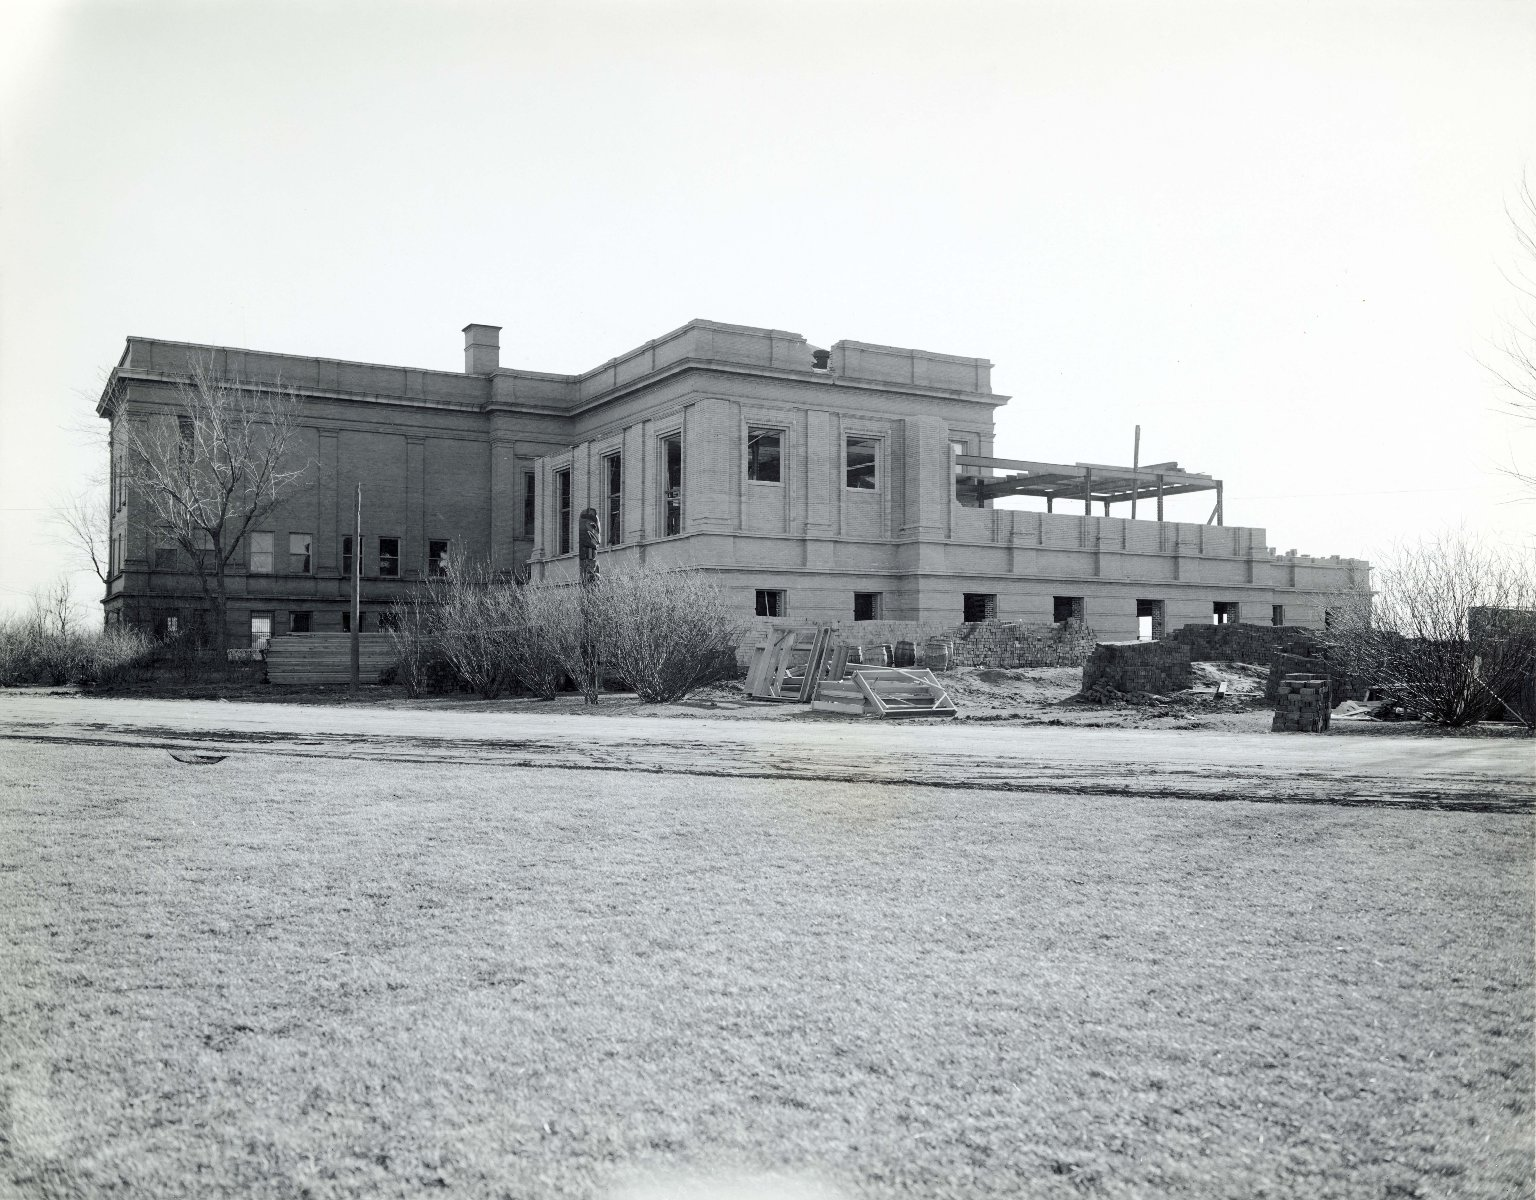 Denver Museum of Nature & Science, 1917-1918